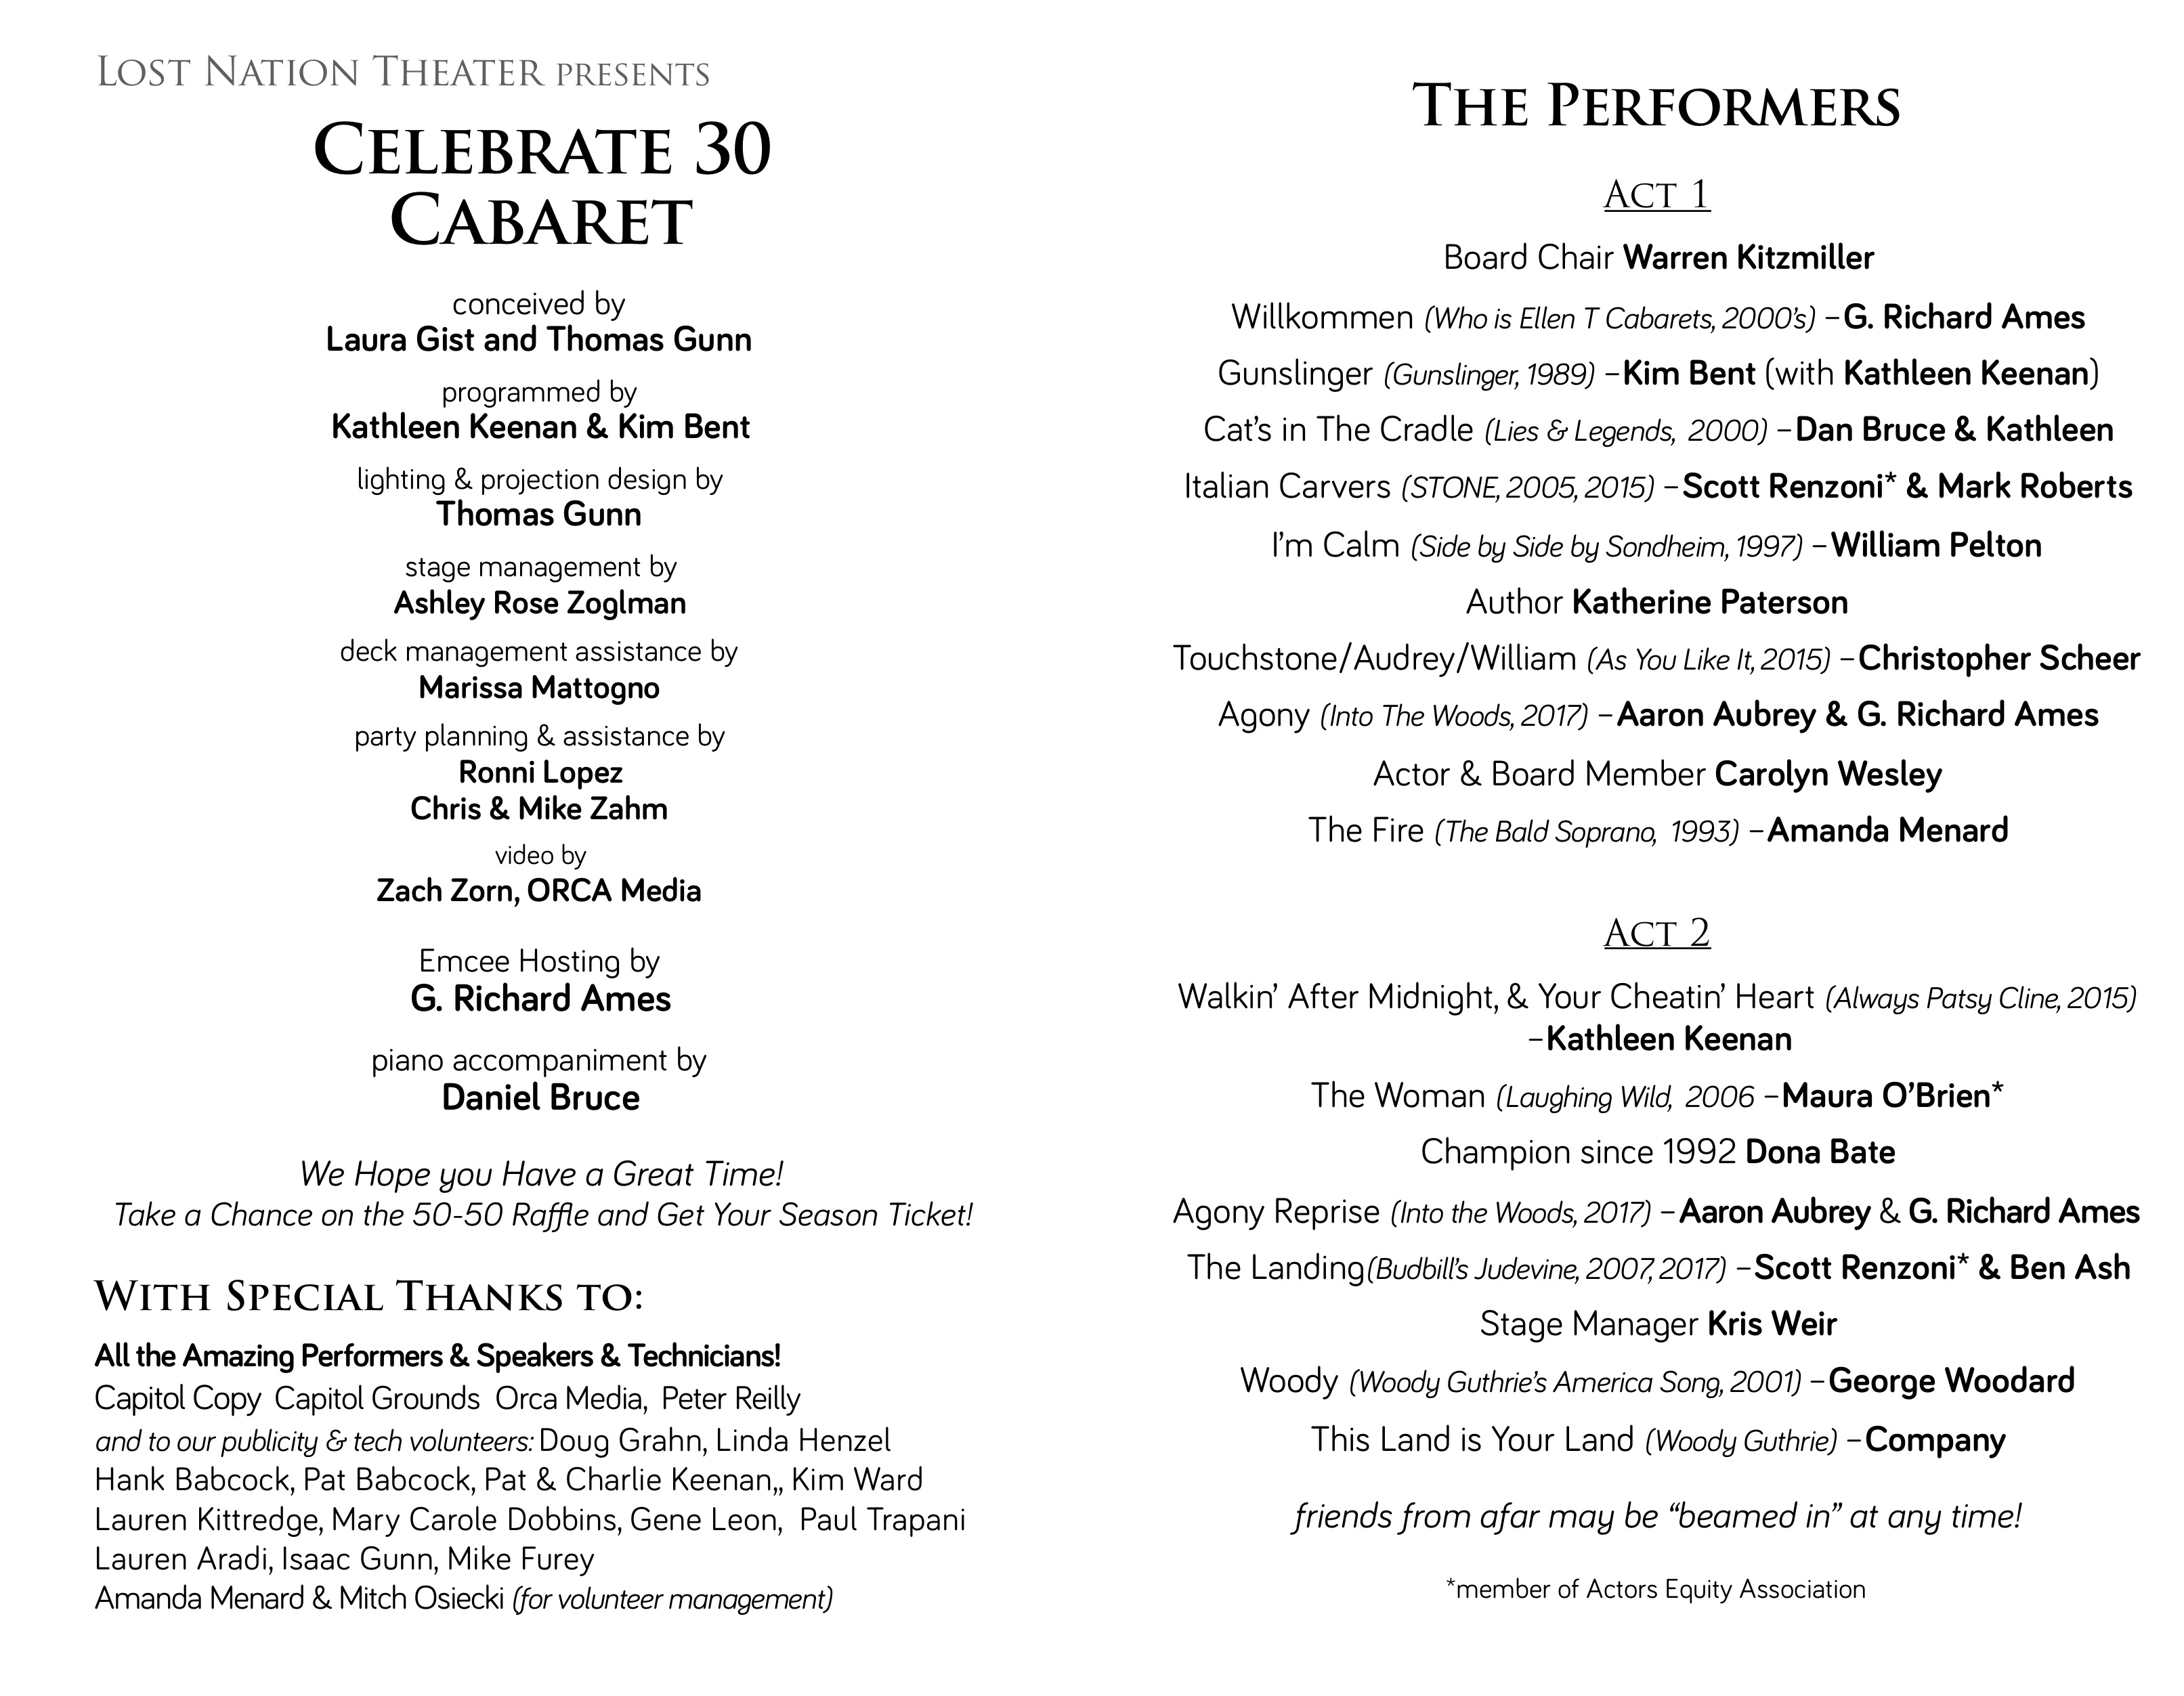 playbill & performer credits from our celebrate 30 cabaret